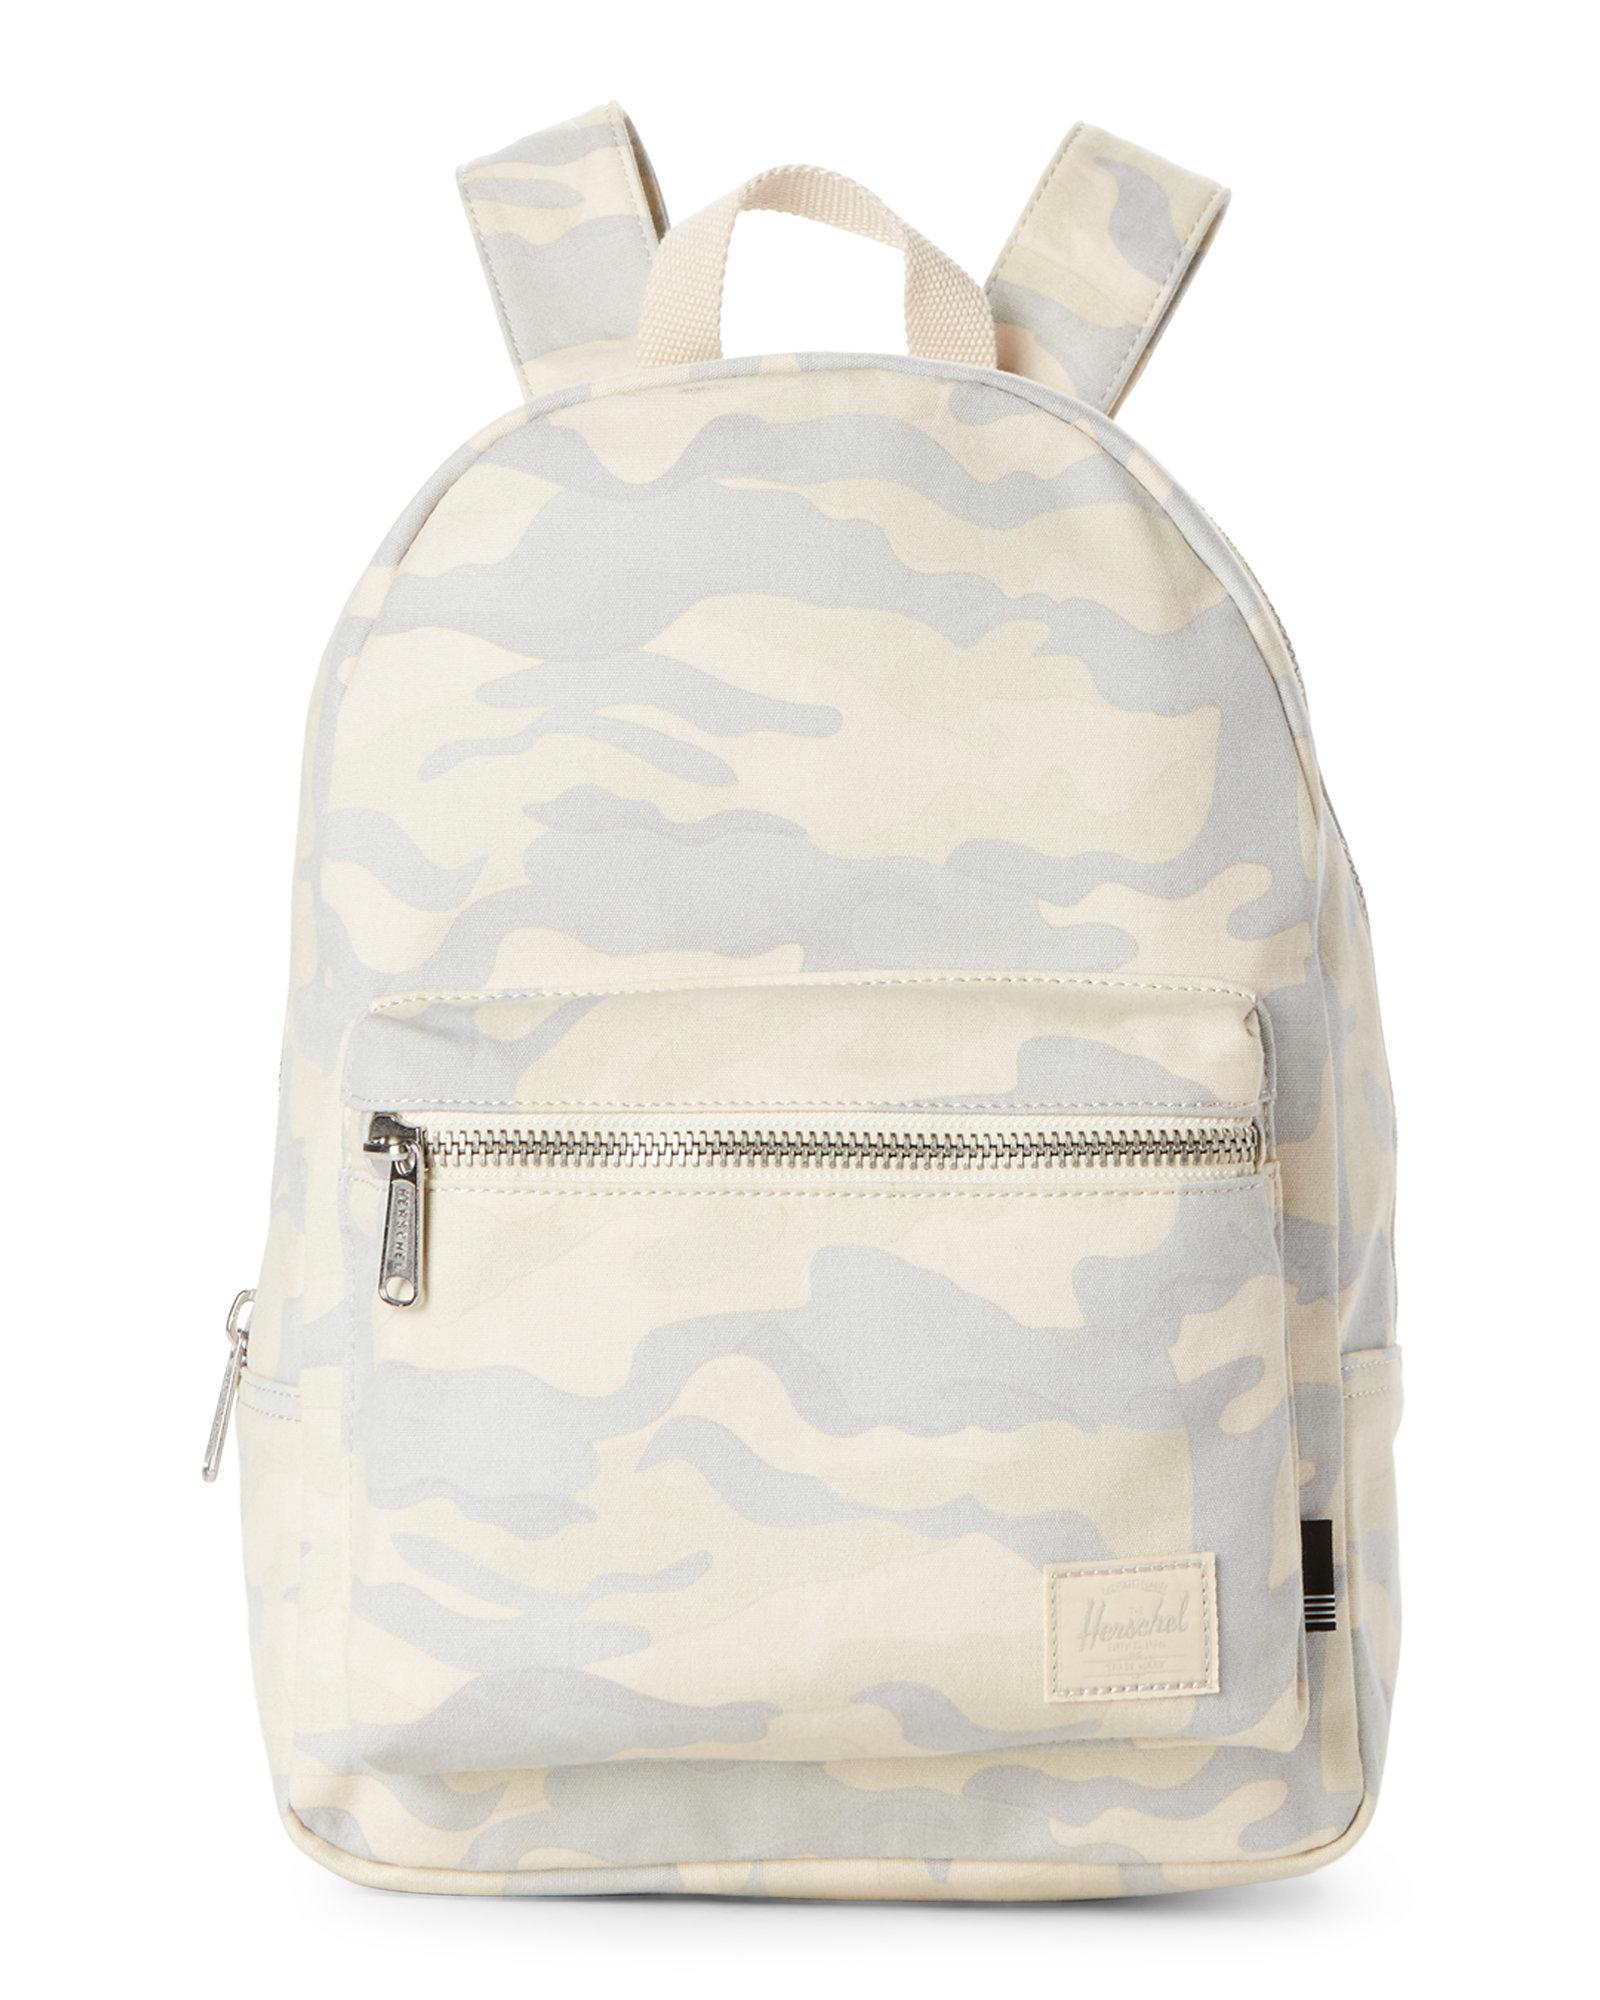 8cbf53b259f Lyst - Herschel Supply Co. Washed Camo Grove Mini Backpack in Natural